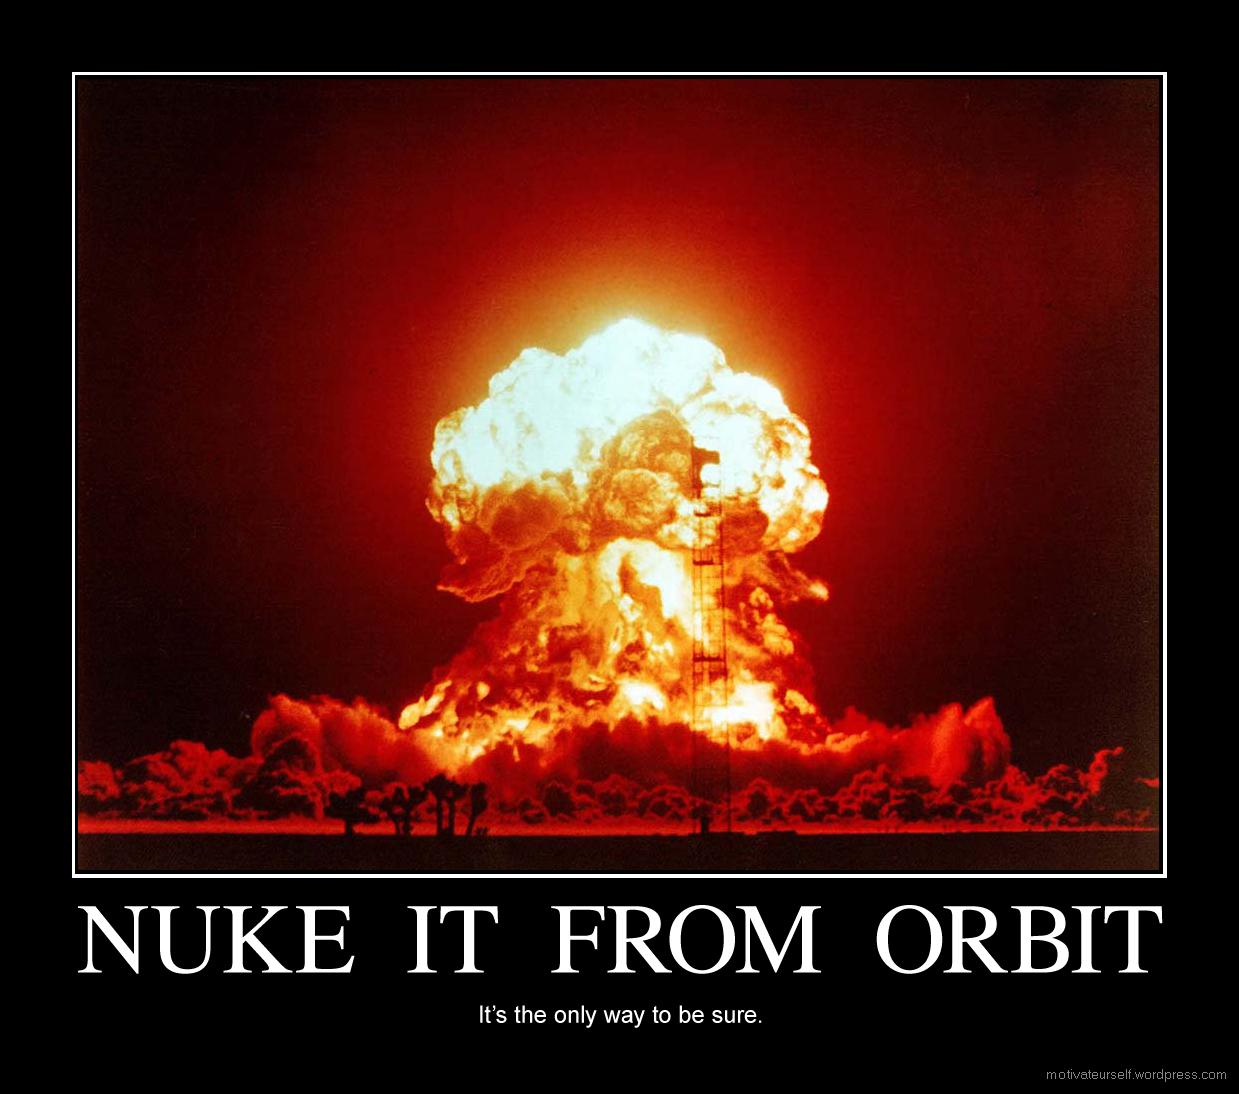 http://motivateurself.files.wordpress.com/2008/06/nuke-it-from-orbit.jpg